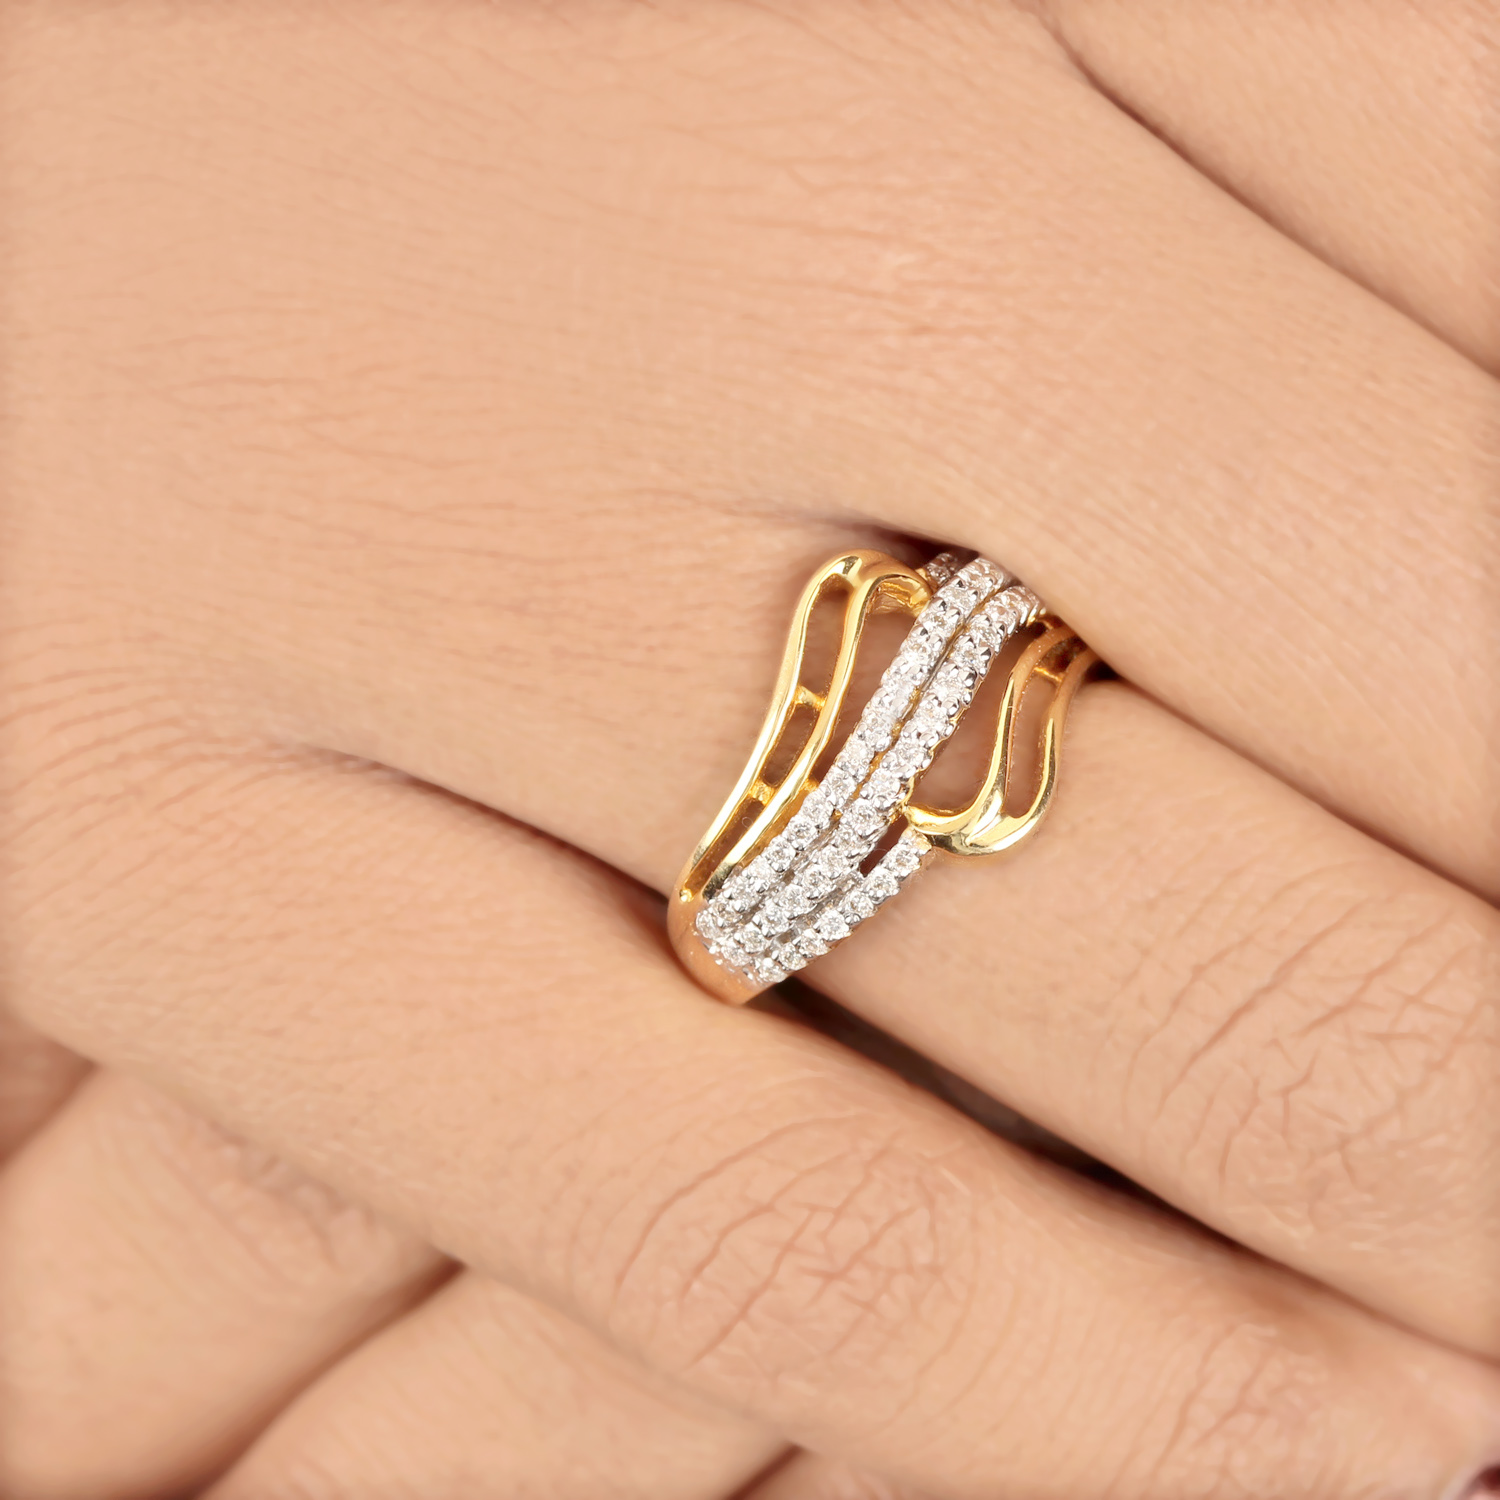 Natural Diamond Ring In Gold